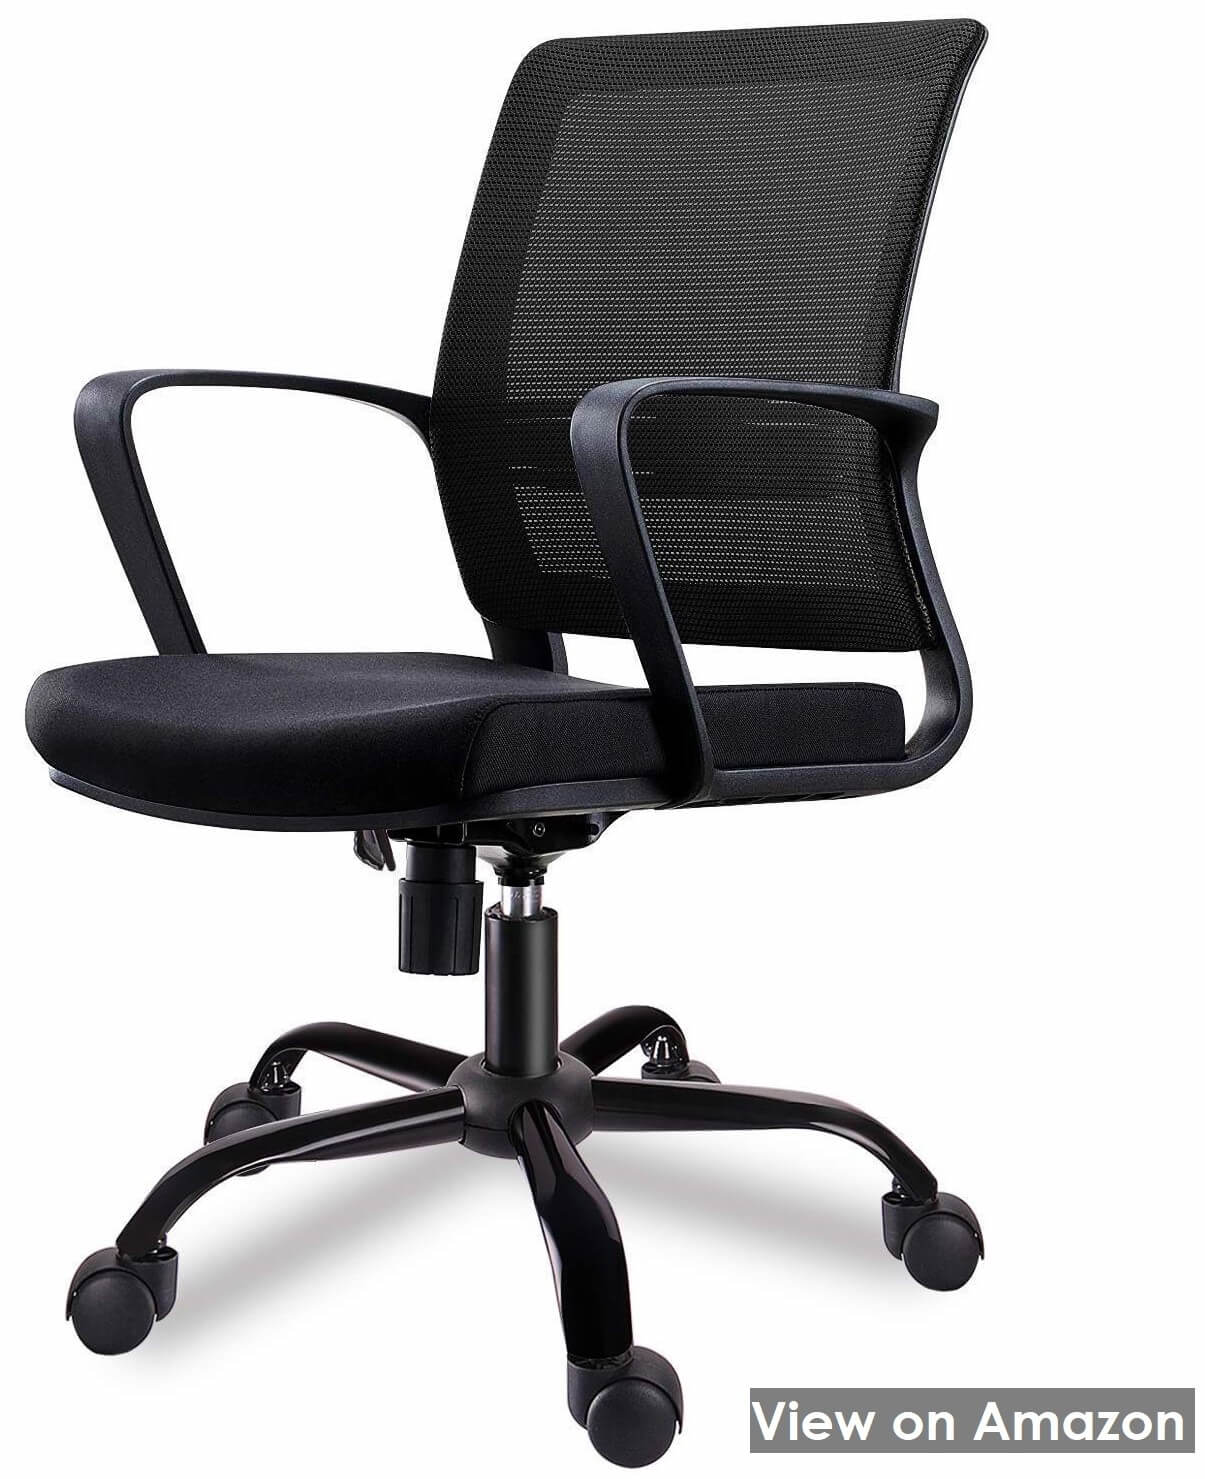 Smugdesk Mid-Back Big Ergonomic Office Chair